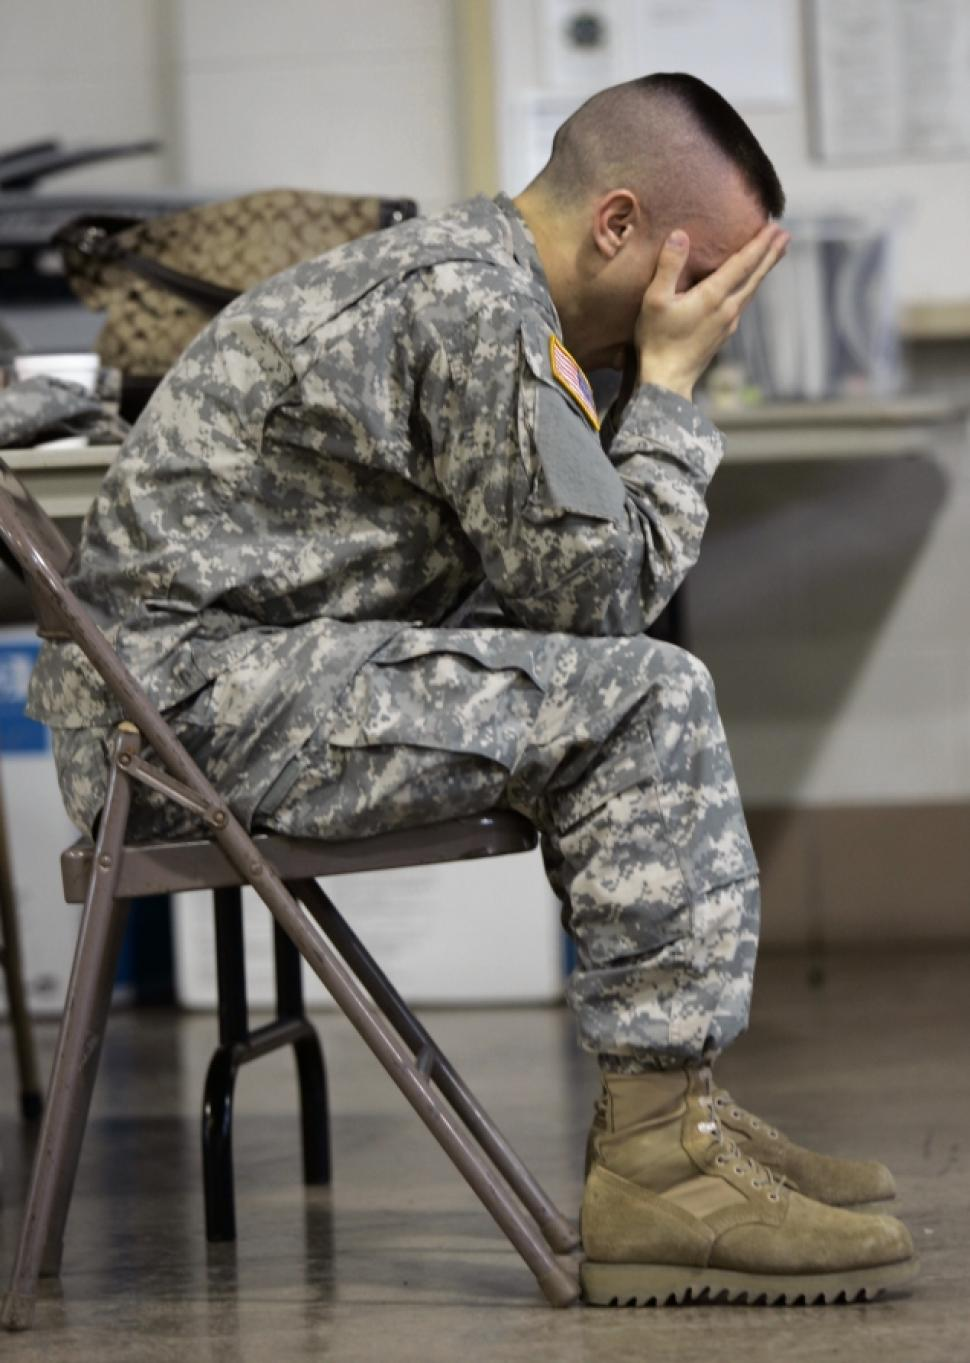 mental health issues in the military The us defense department's medical surveillance states the most common reason for male military personnel visiting the hospital is mental health it suggests with better outreach and.